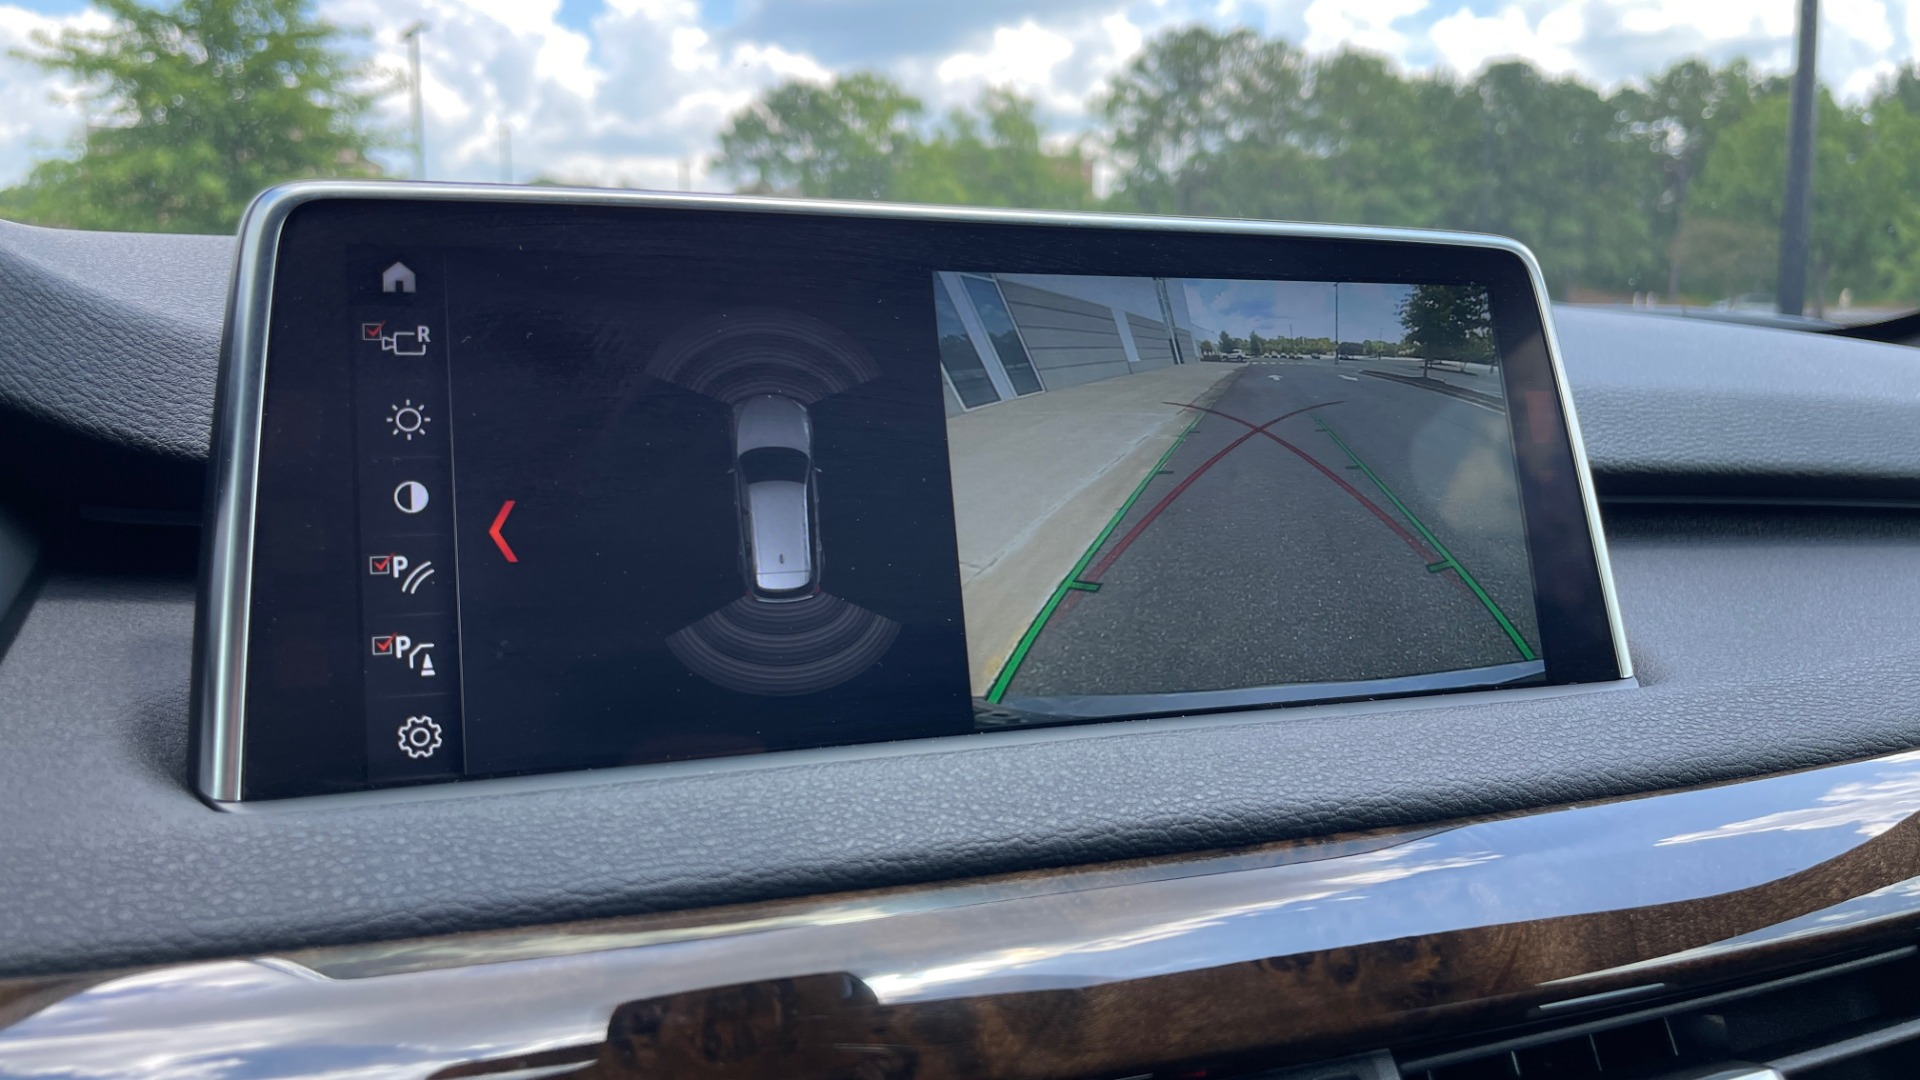 Used 2018 BMW X5 XDRIVE35I PREMIUM / DRVR ASST / WIRELESS CHARGING / CAMERAS for sale $46,995 at Formula Imports in Charlotte NC 28227 52